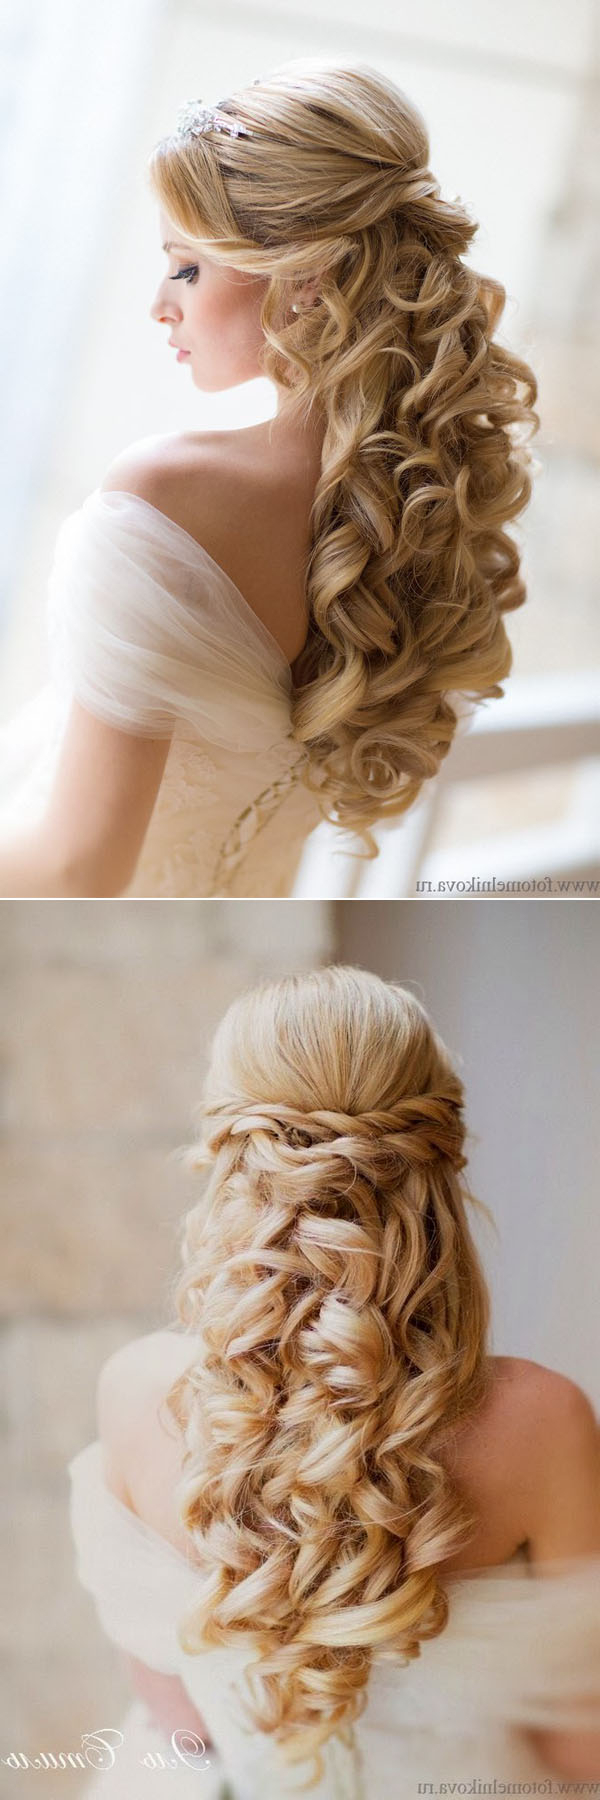 Newest Medium Half Up Half Down Bridal Hairstyles With Fancy Knots Intended For 20 Awesome Half Up Half Down Wedding Hairstyle Ideas (View 12 of 20)